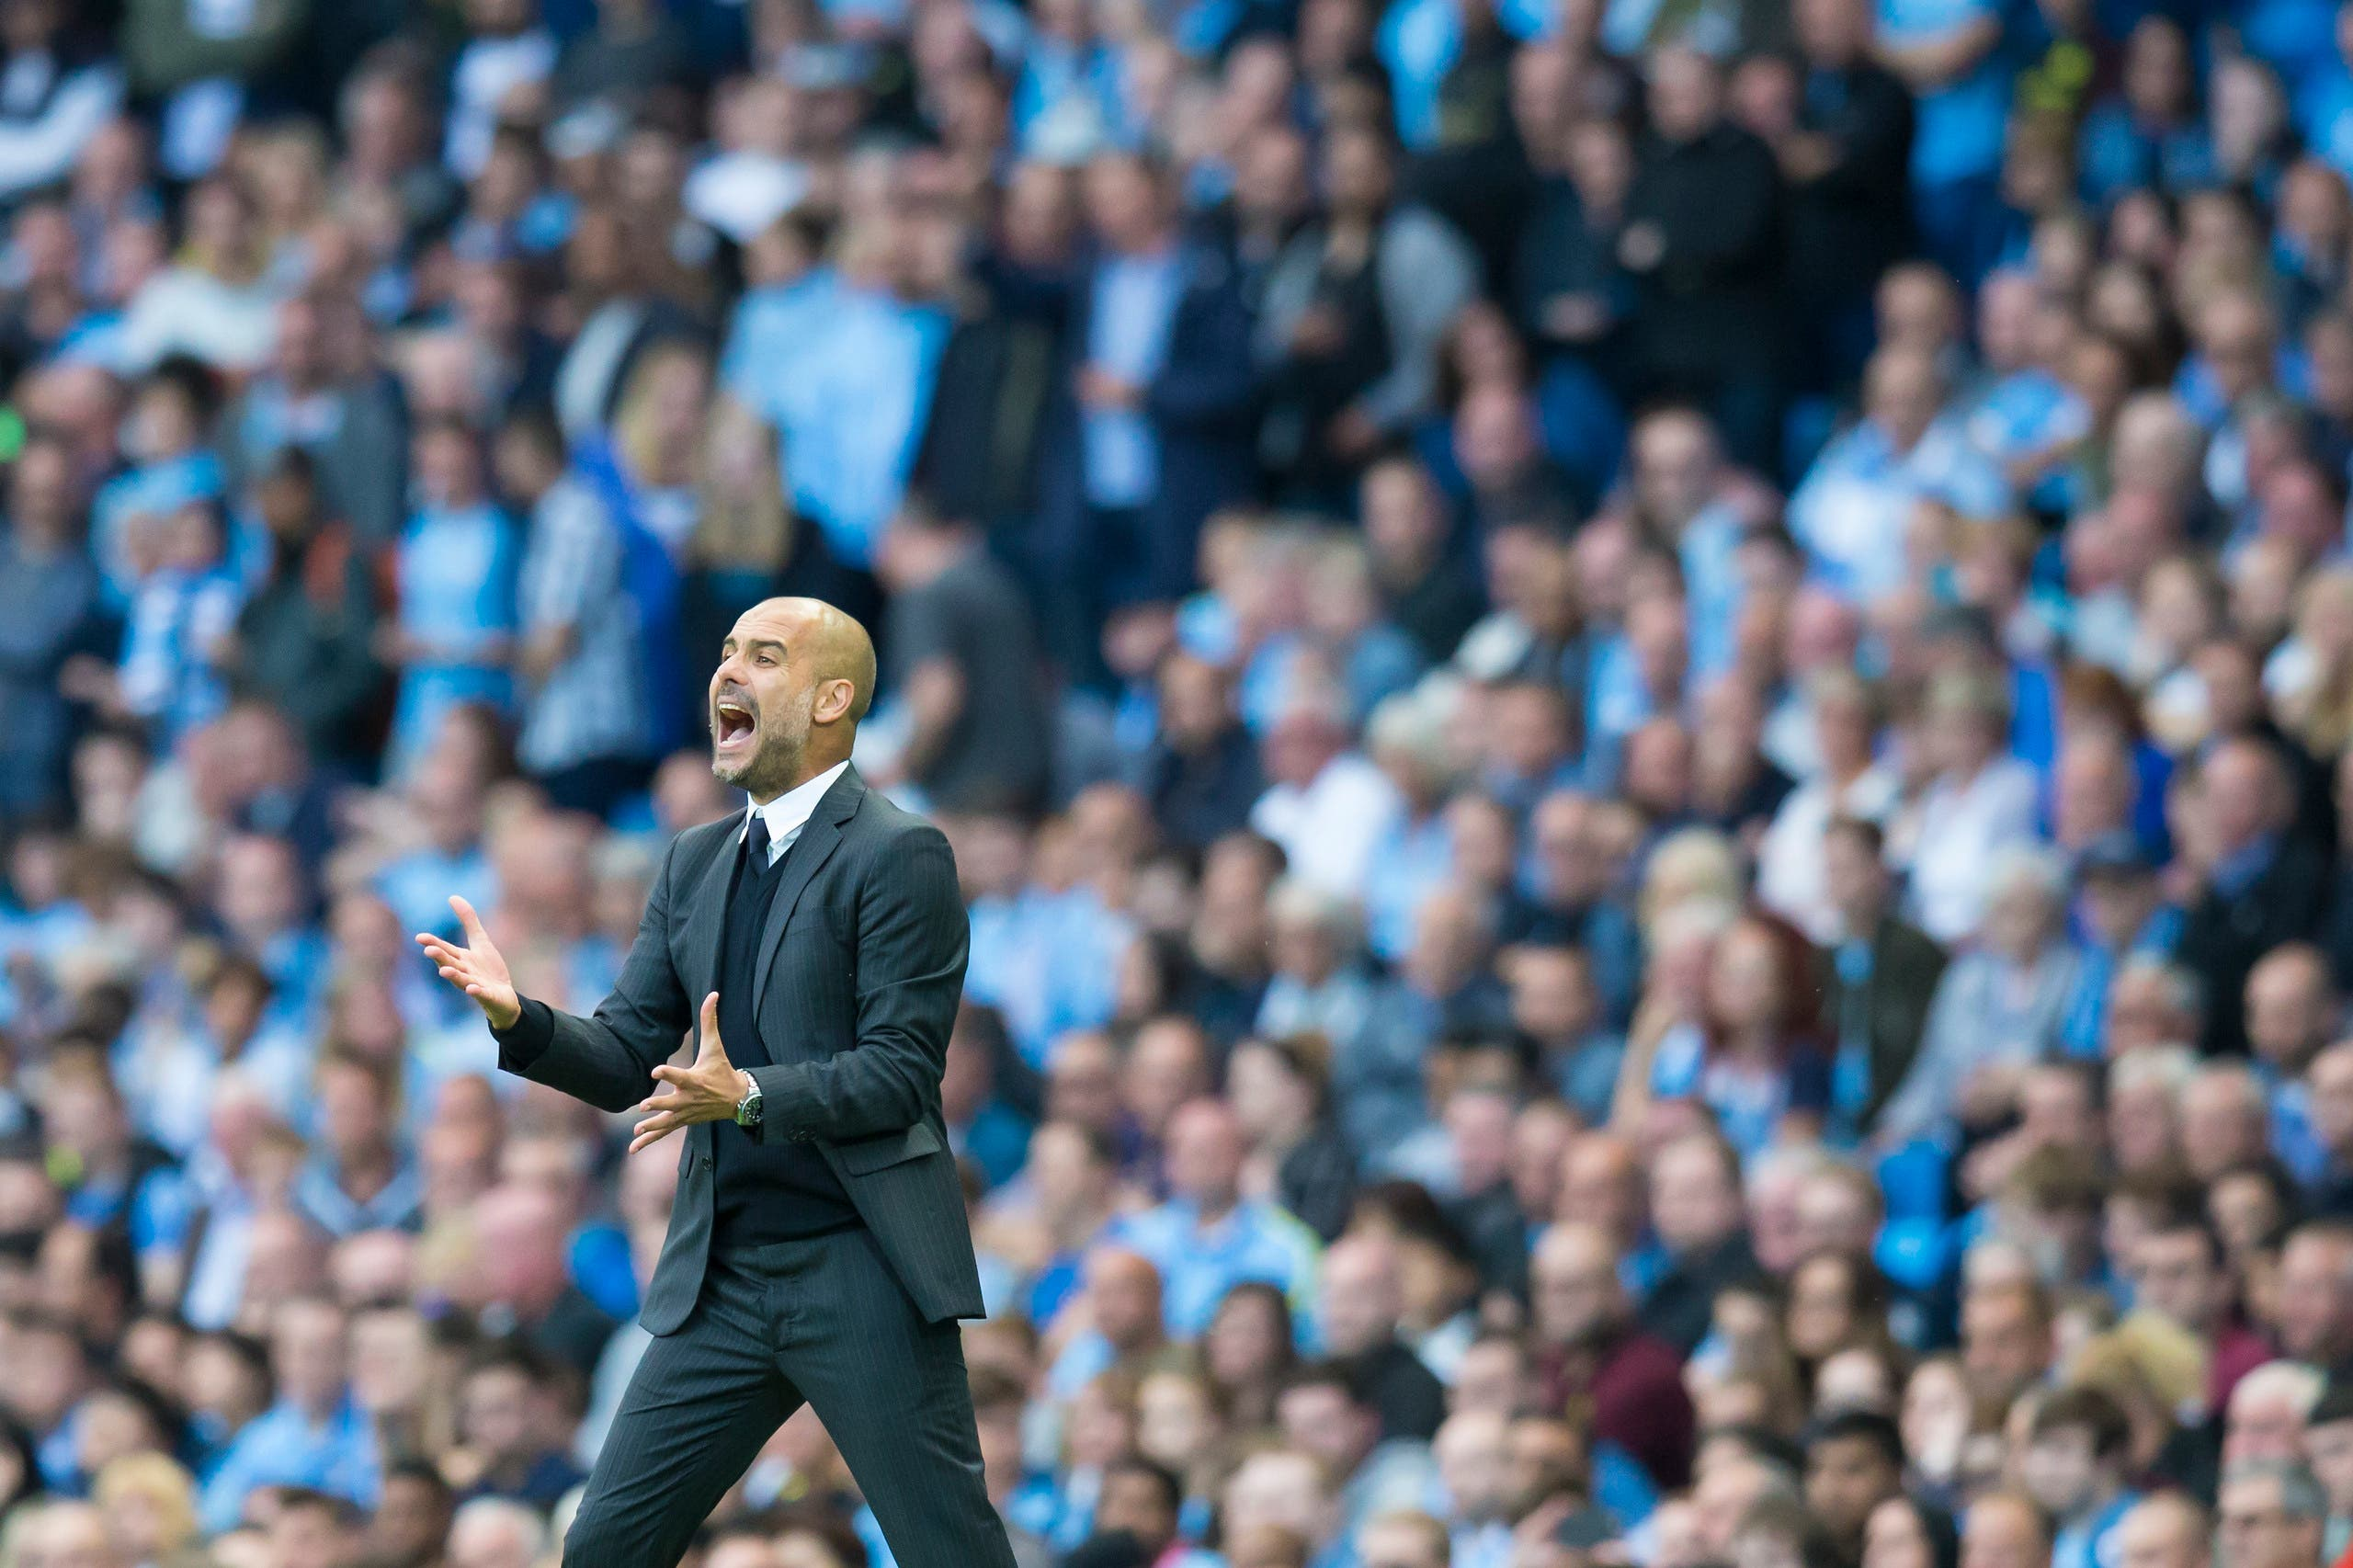 Manchester City's new manager Pep Guardiola reacts after a missed opportunity during the English Premier League soccer match between Manchester City and Sunderland at the Etihad Stadium in Manchester, England, Saturday Aug. 13, 2016. (AP